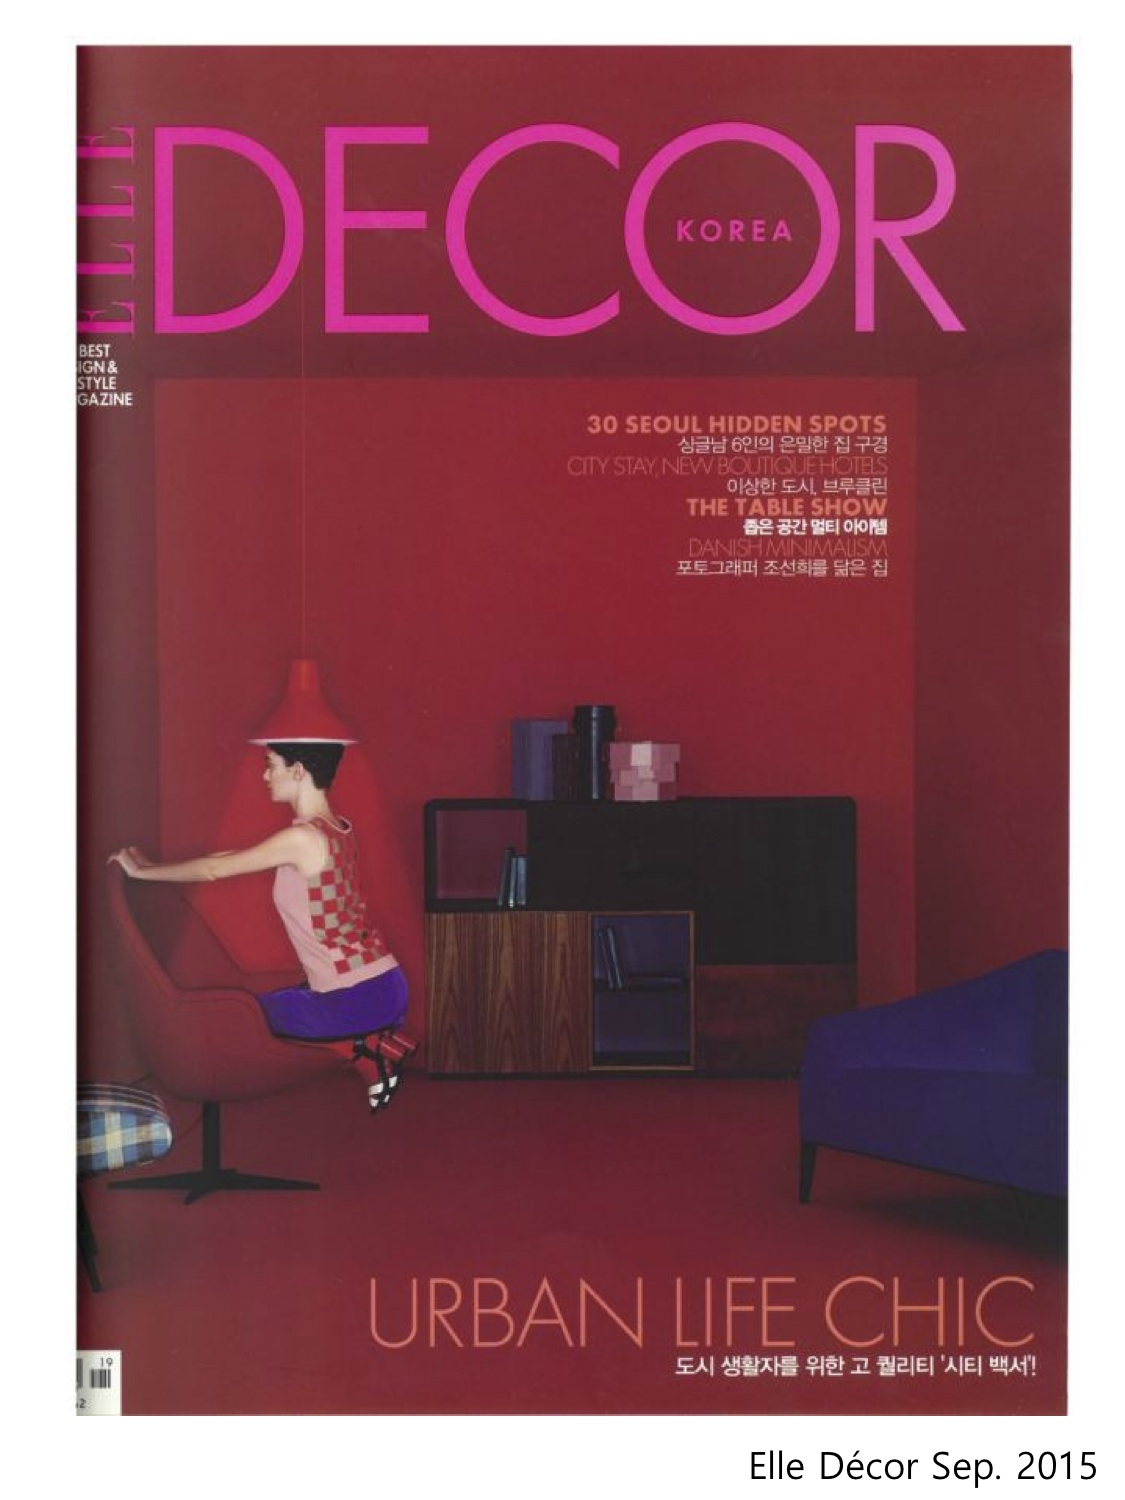 Elle Decor - December 2015.jpg